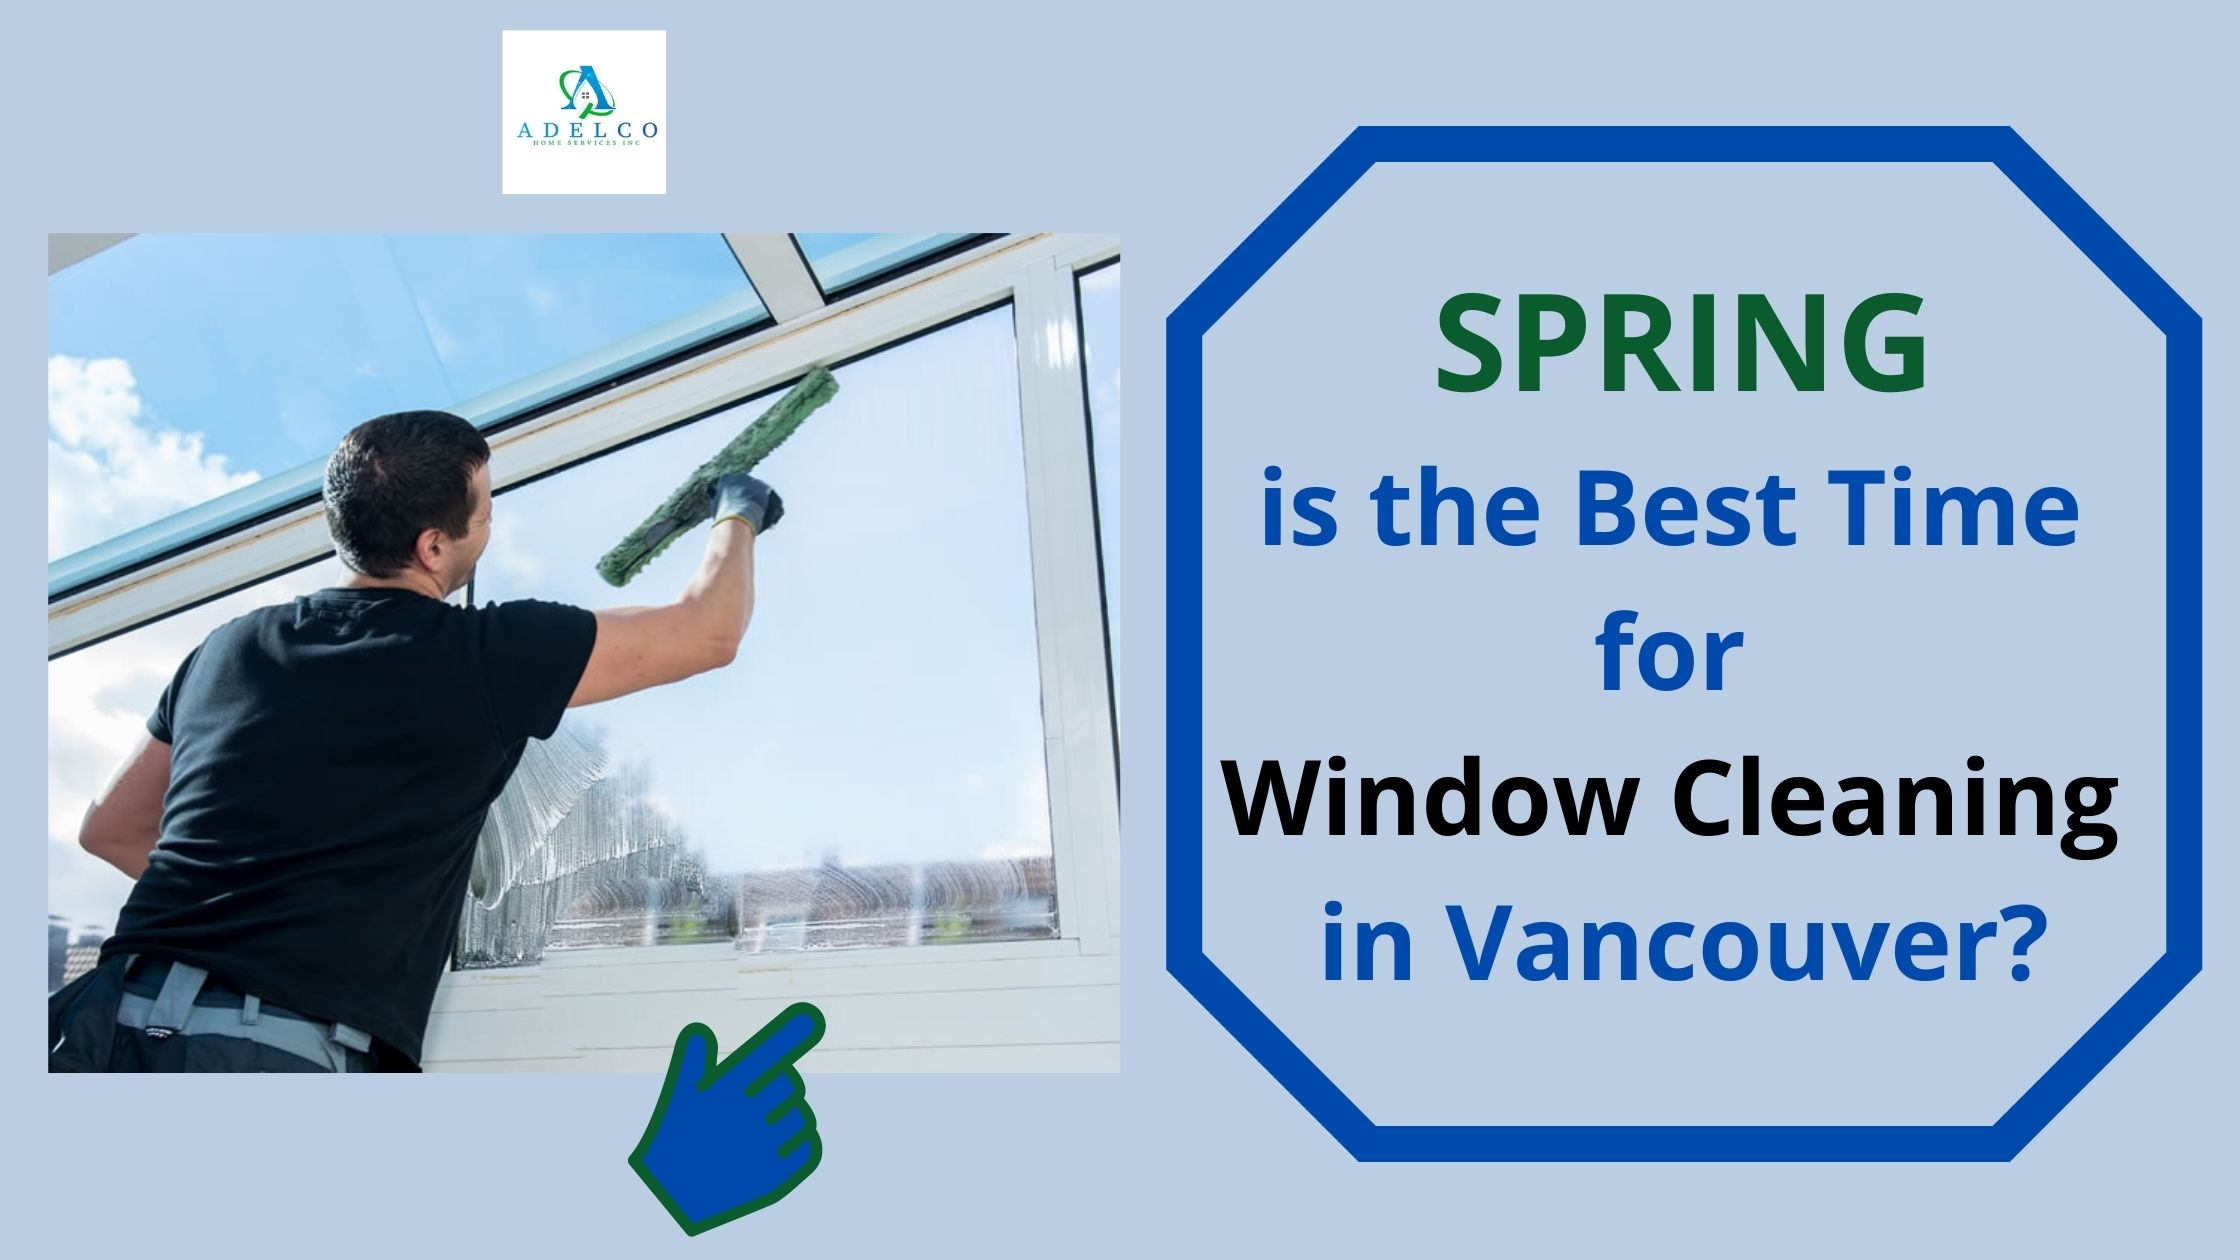 Spring is the best time for window cleaning in Vancouver